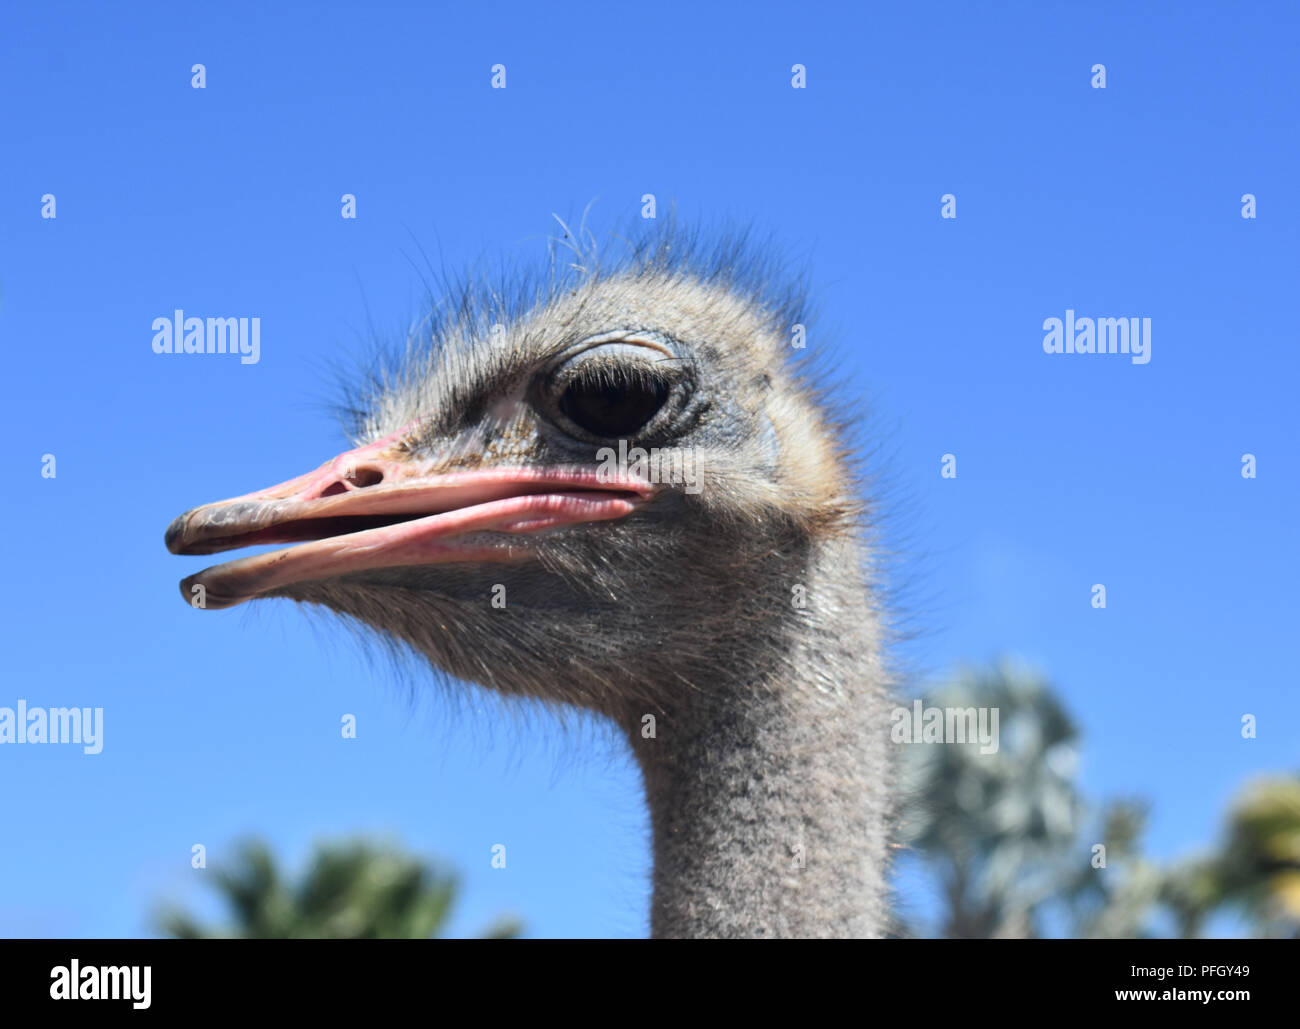 Great profile of a common ostrich with bright blue skies. Stock Photo